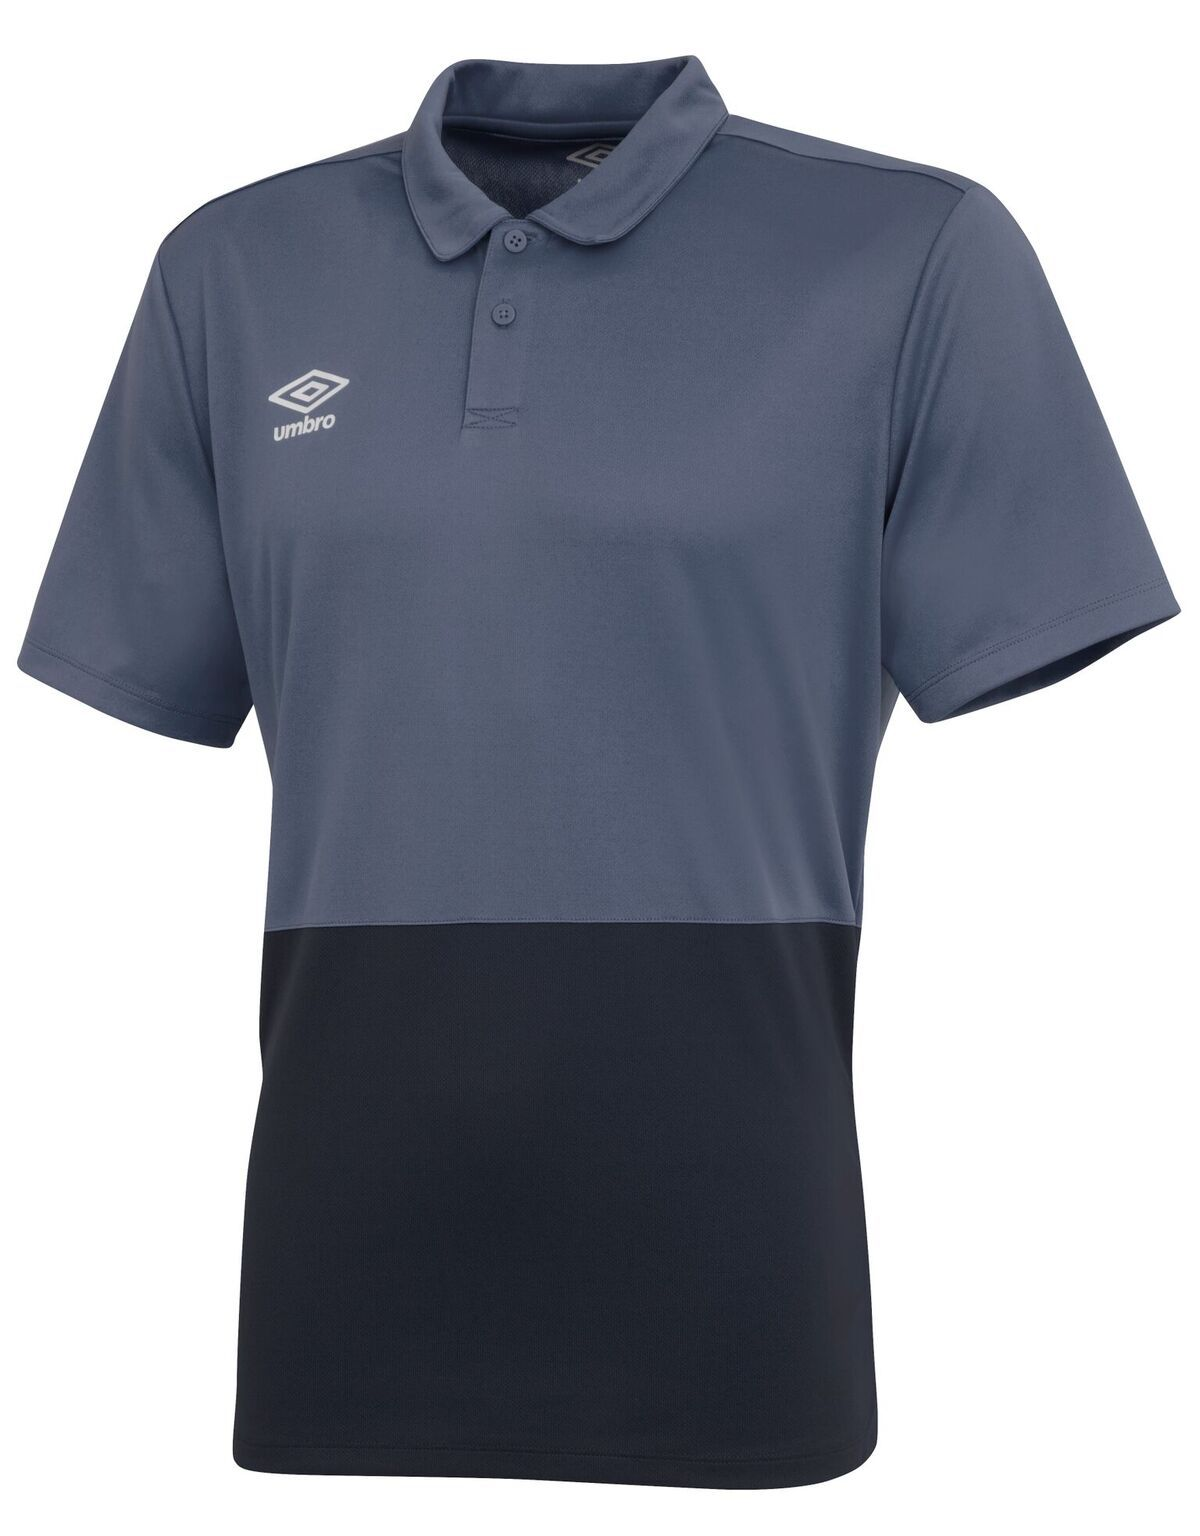 training poly polo carbon black 30353 p